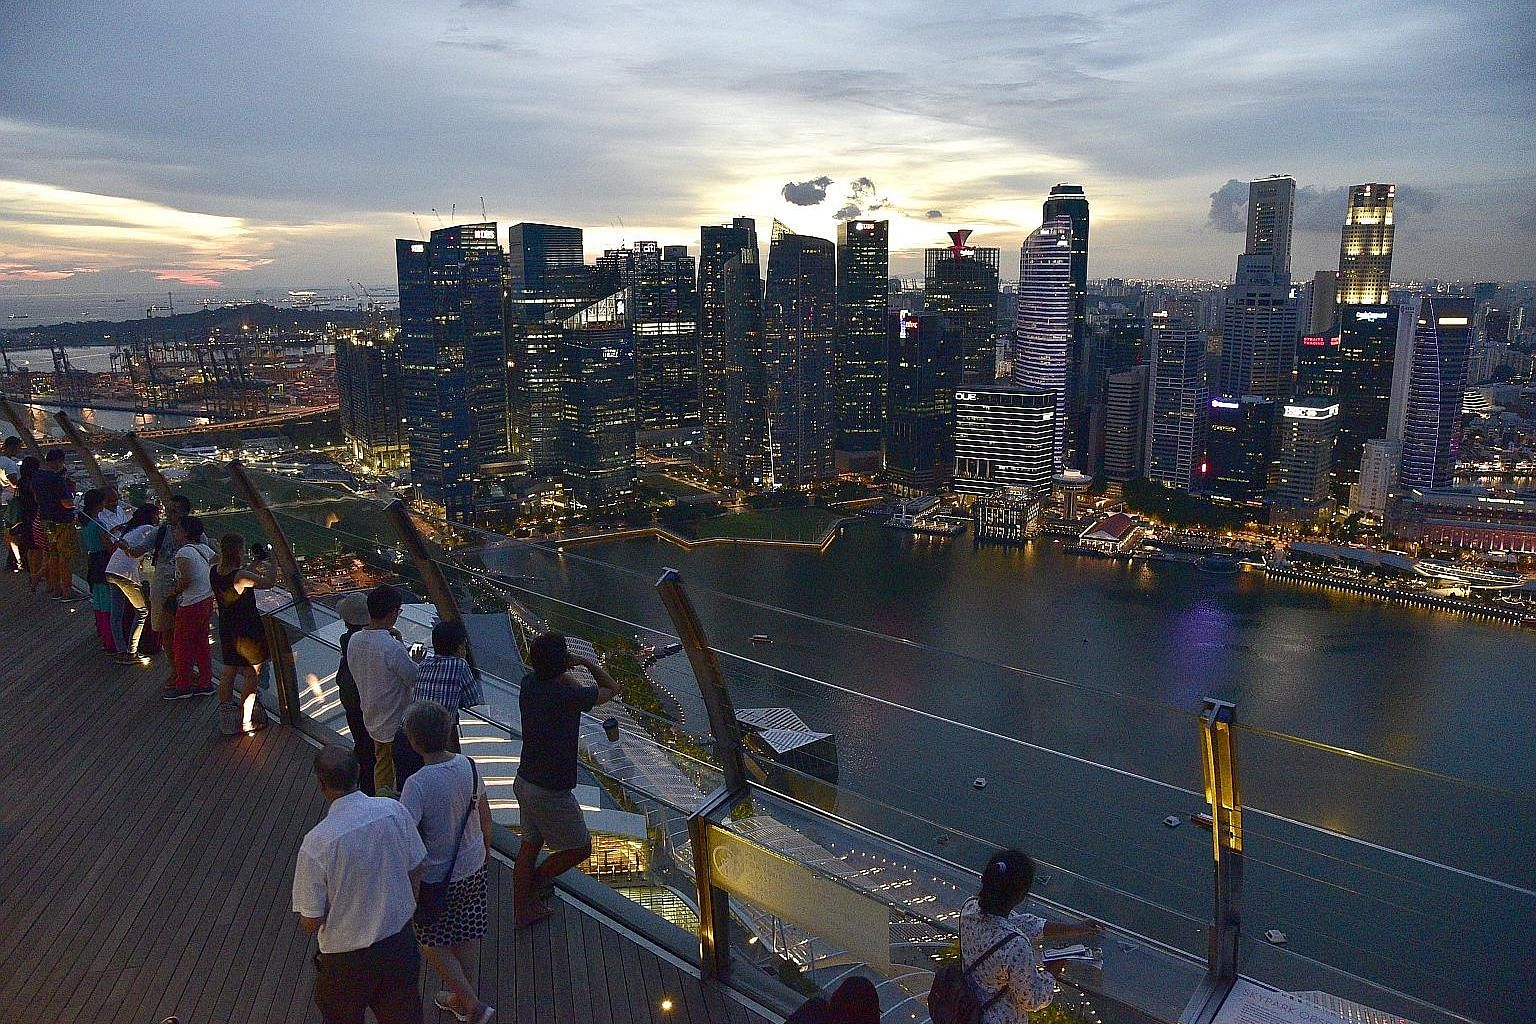 Visitor arrivals in Singapore rose 1.4 per cent year on year in the first six months of this year, down from a 7.7 per cent jump in the same period last year. Maybank Kim Eng Securities' Mr Chua Su Tye remains positive on the outlook as accommodation